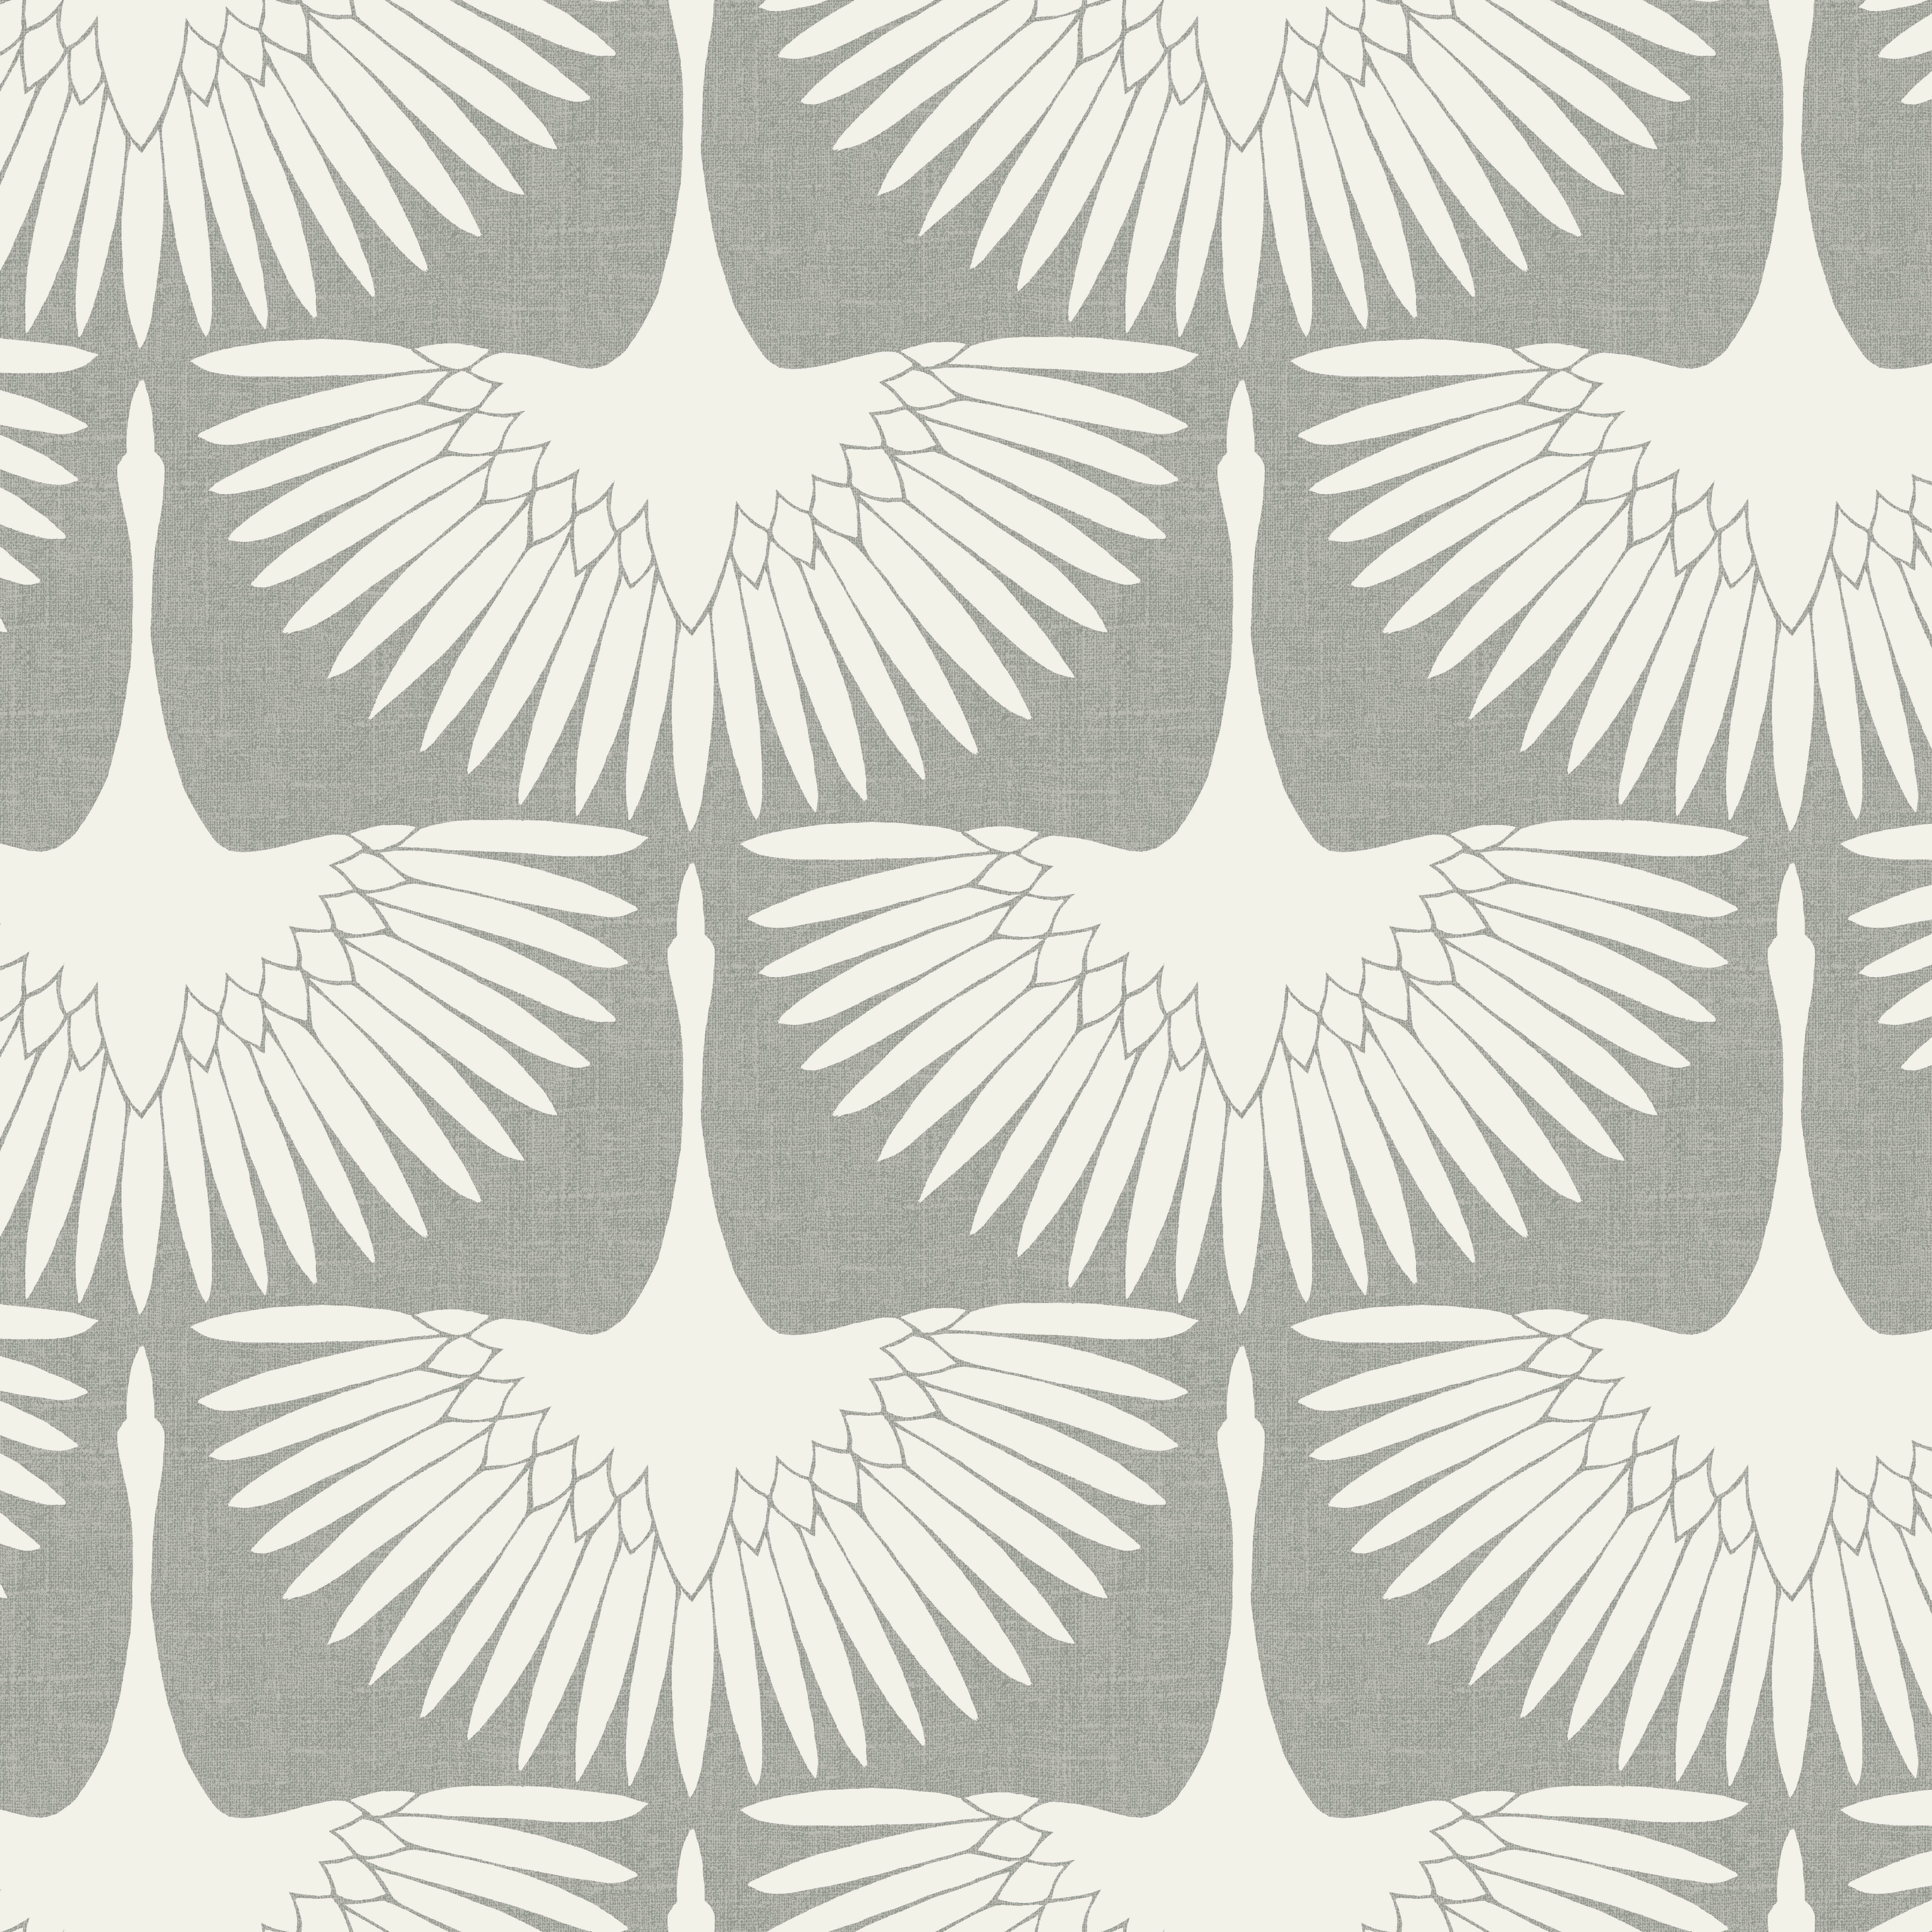 Feathered Removable Wallpaper White Flock Wallpaper Peel And Stick Wallpaper Removable Wallpaper